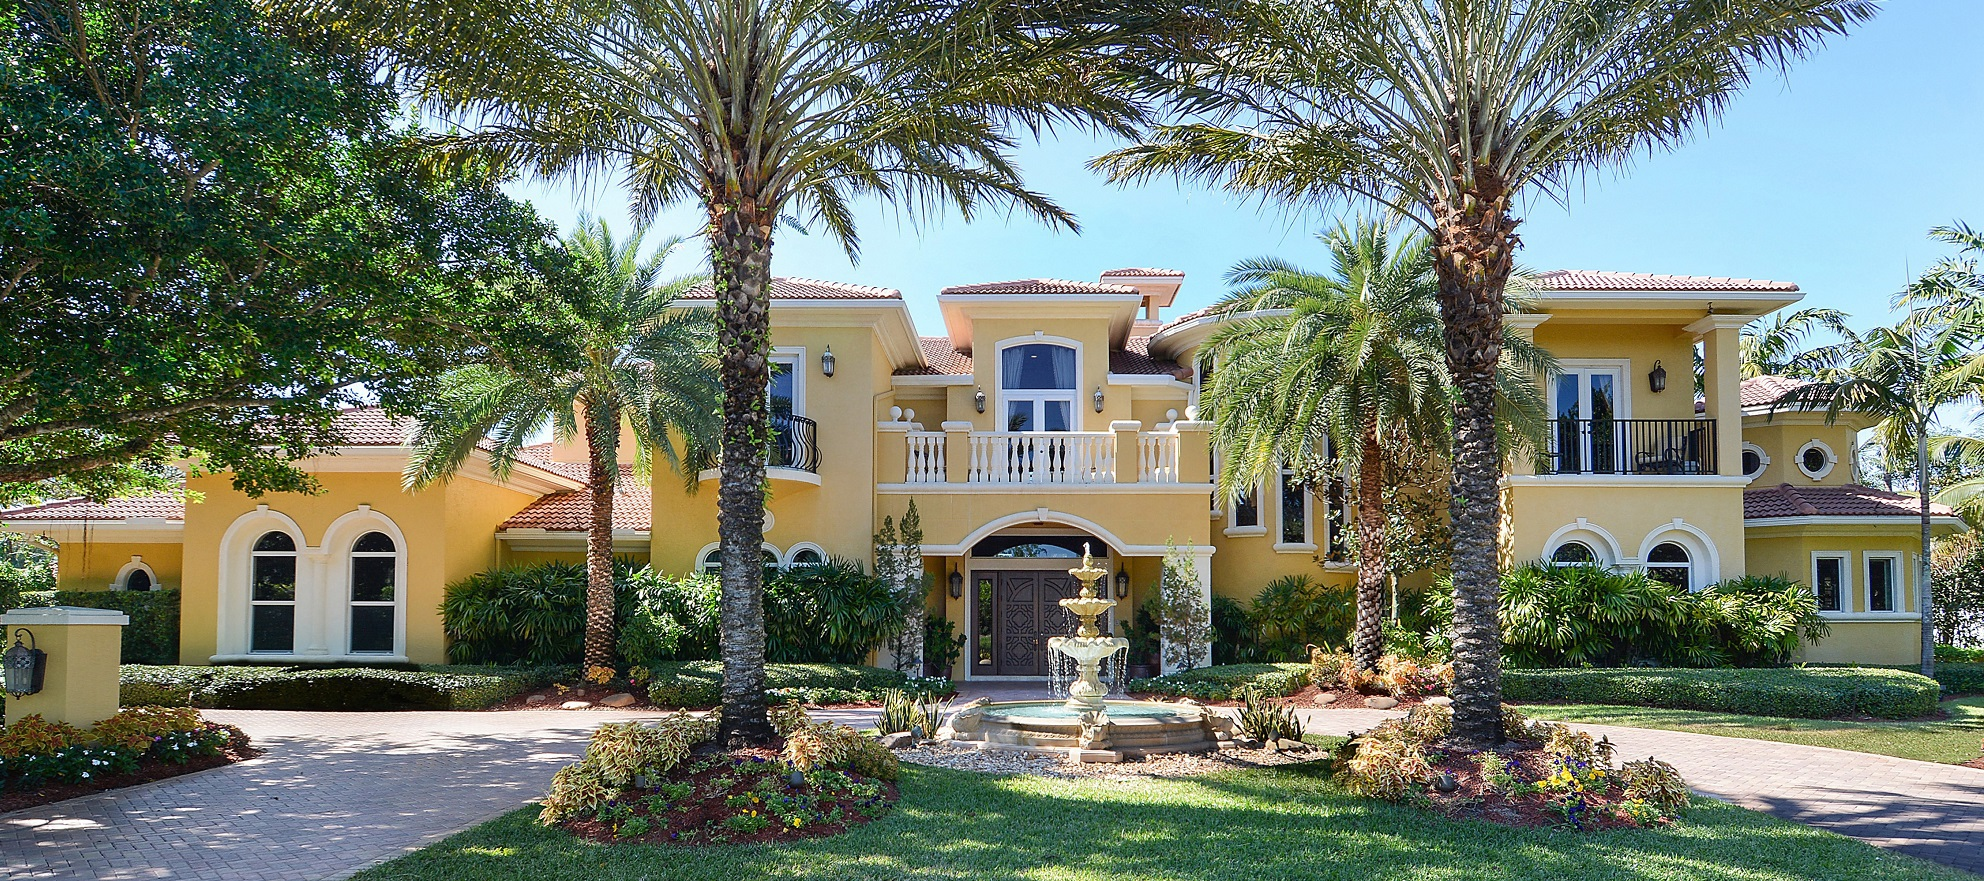 Luxury listing: custom-built waterfront home with ample space